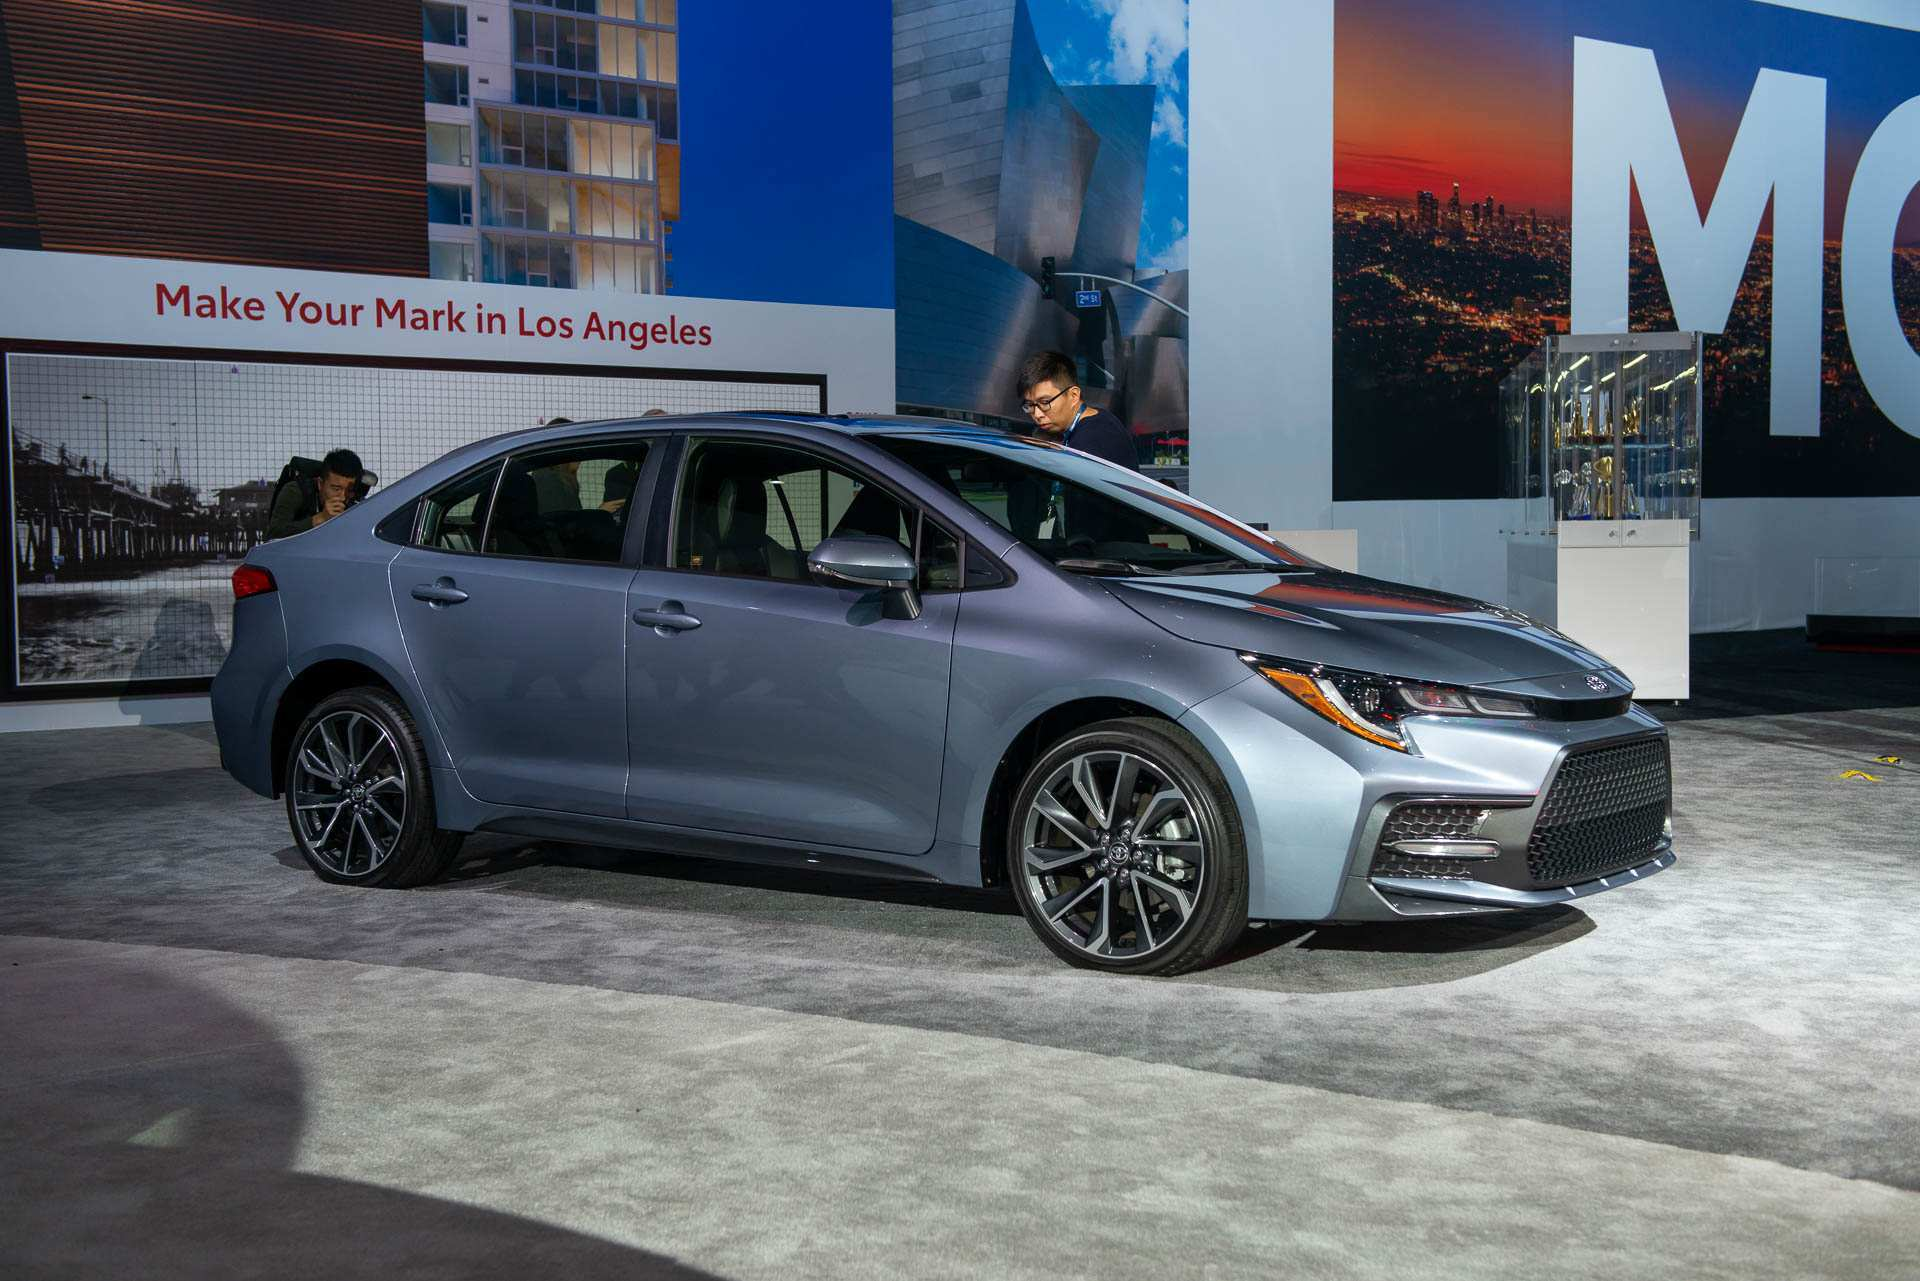 36 New Toyota Avensis 2020 Picture